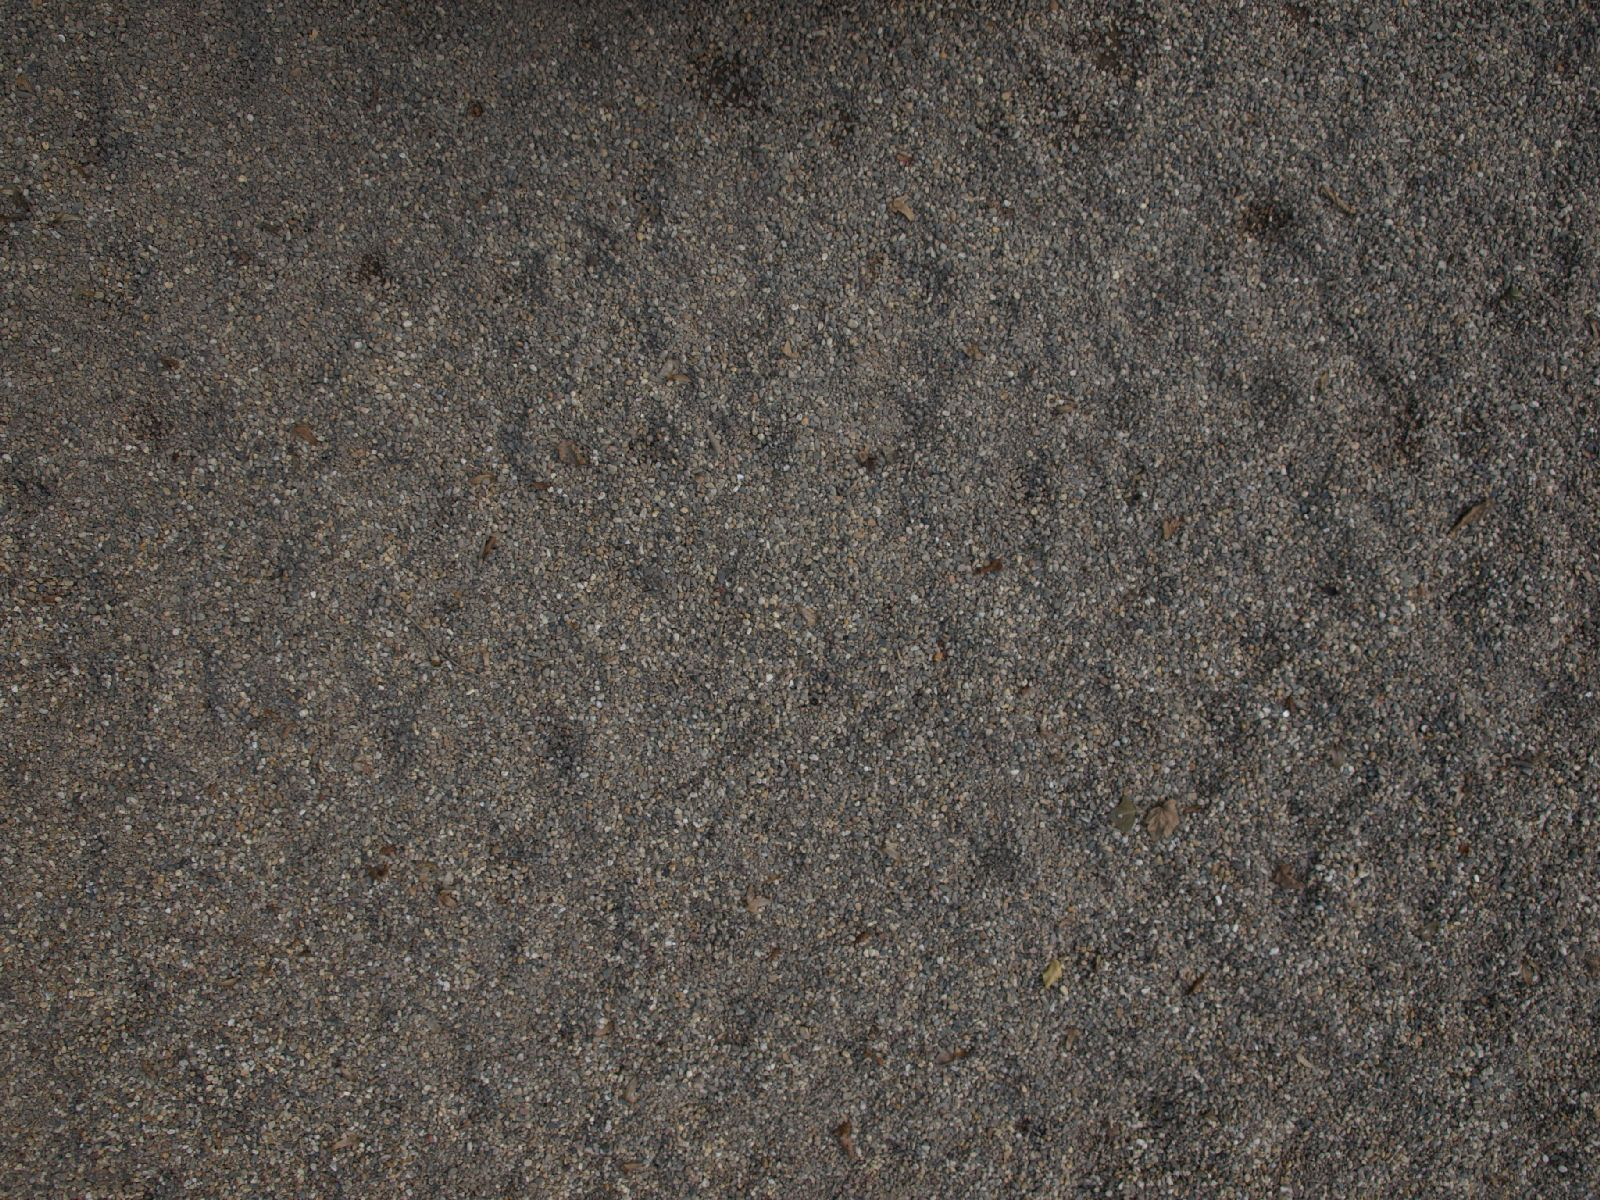 Ground-Nature_Texture_A_P9129608